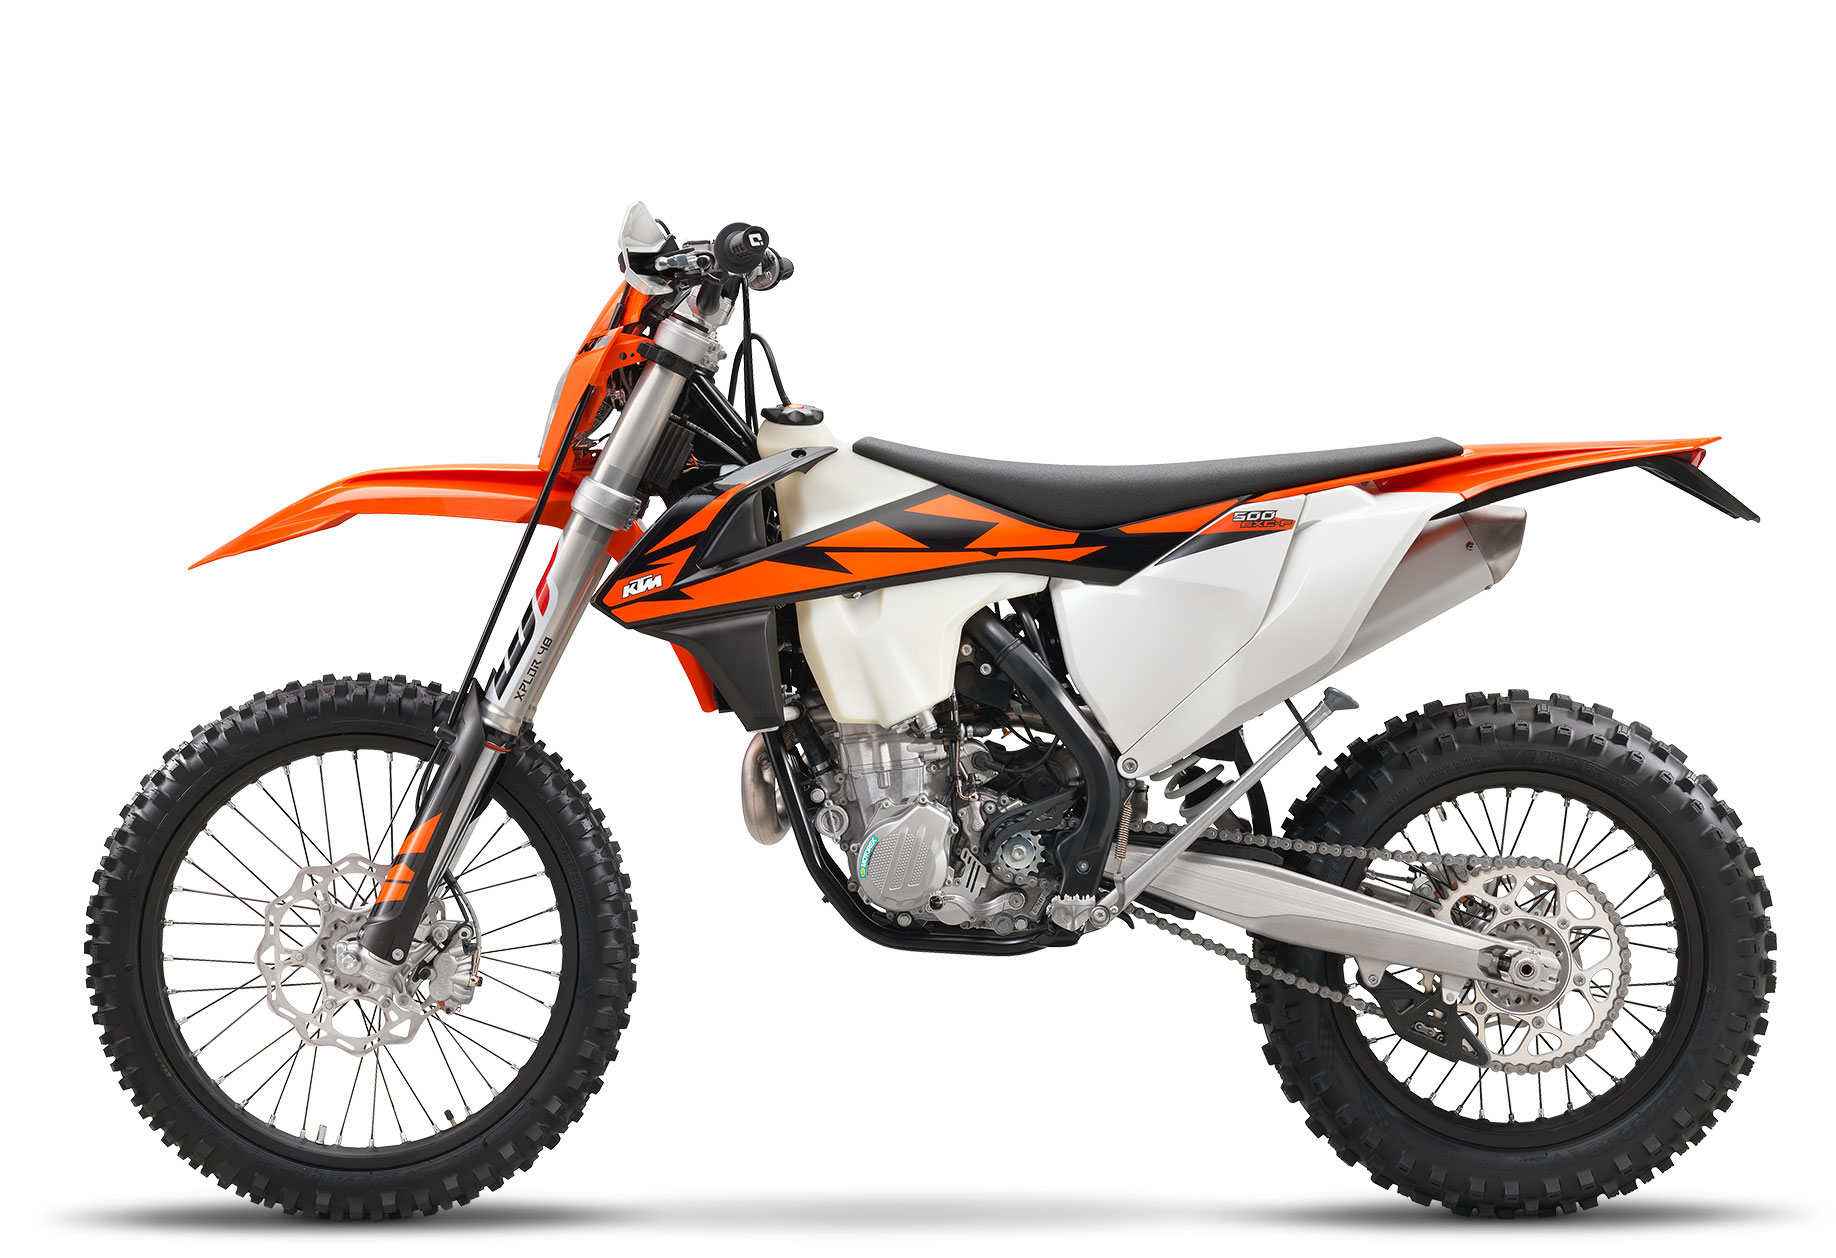 2018 ktm 500 exc f review total motorcycle. Black Bedroom Furniture Sets. Home Design Ideas